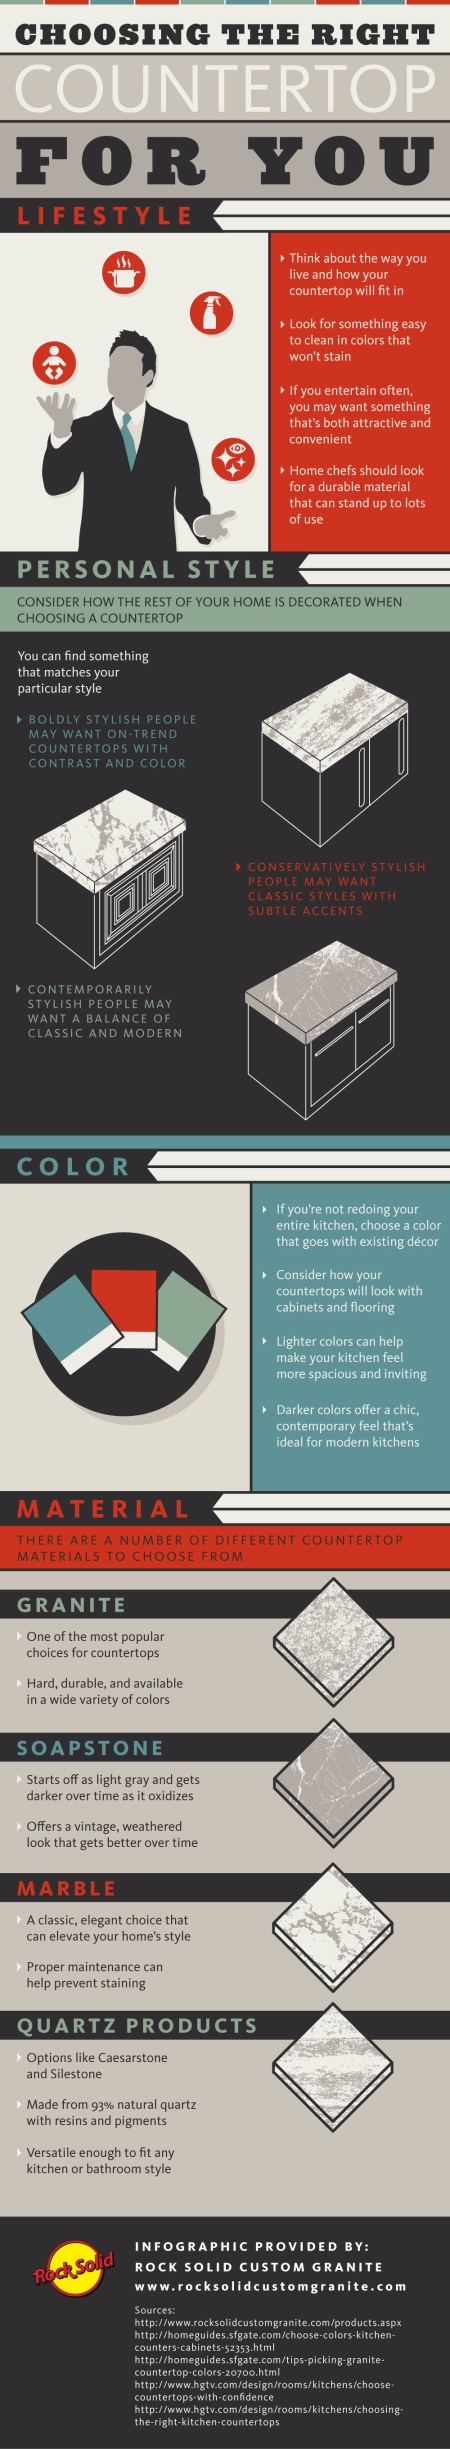 Choosing-The-Right-Countertop-For-You-Infographic[1]